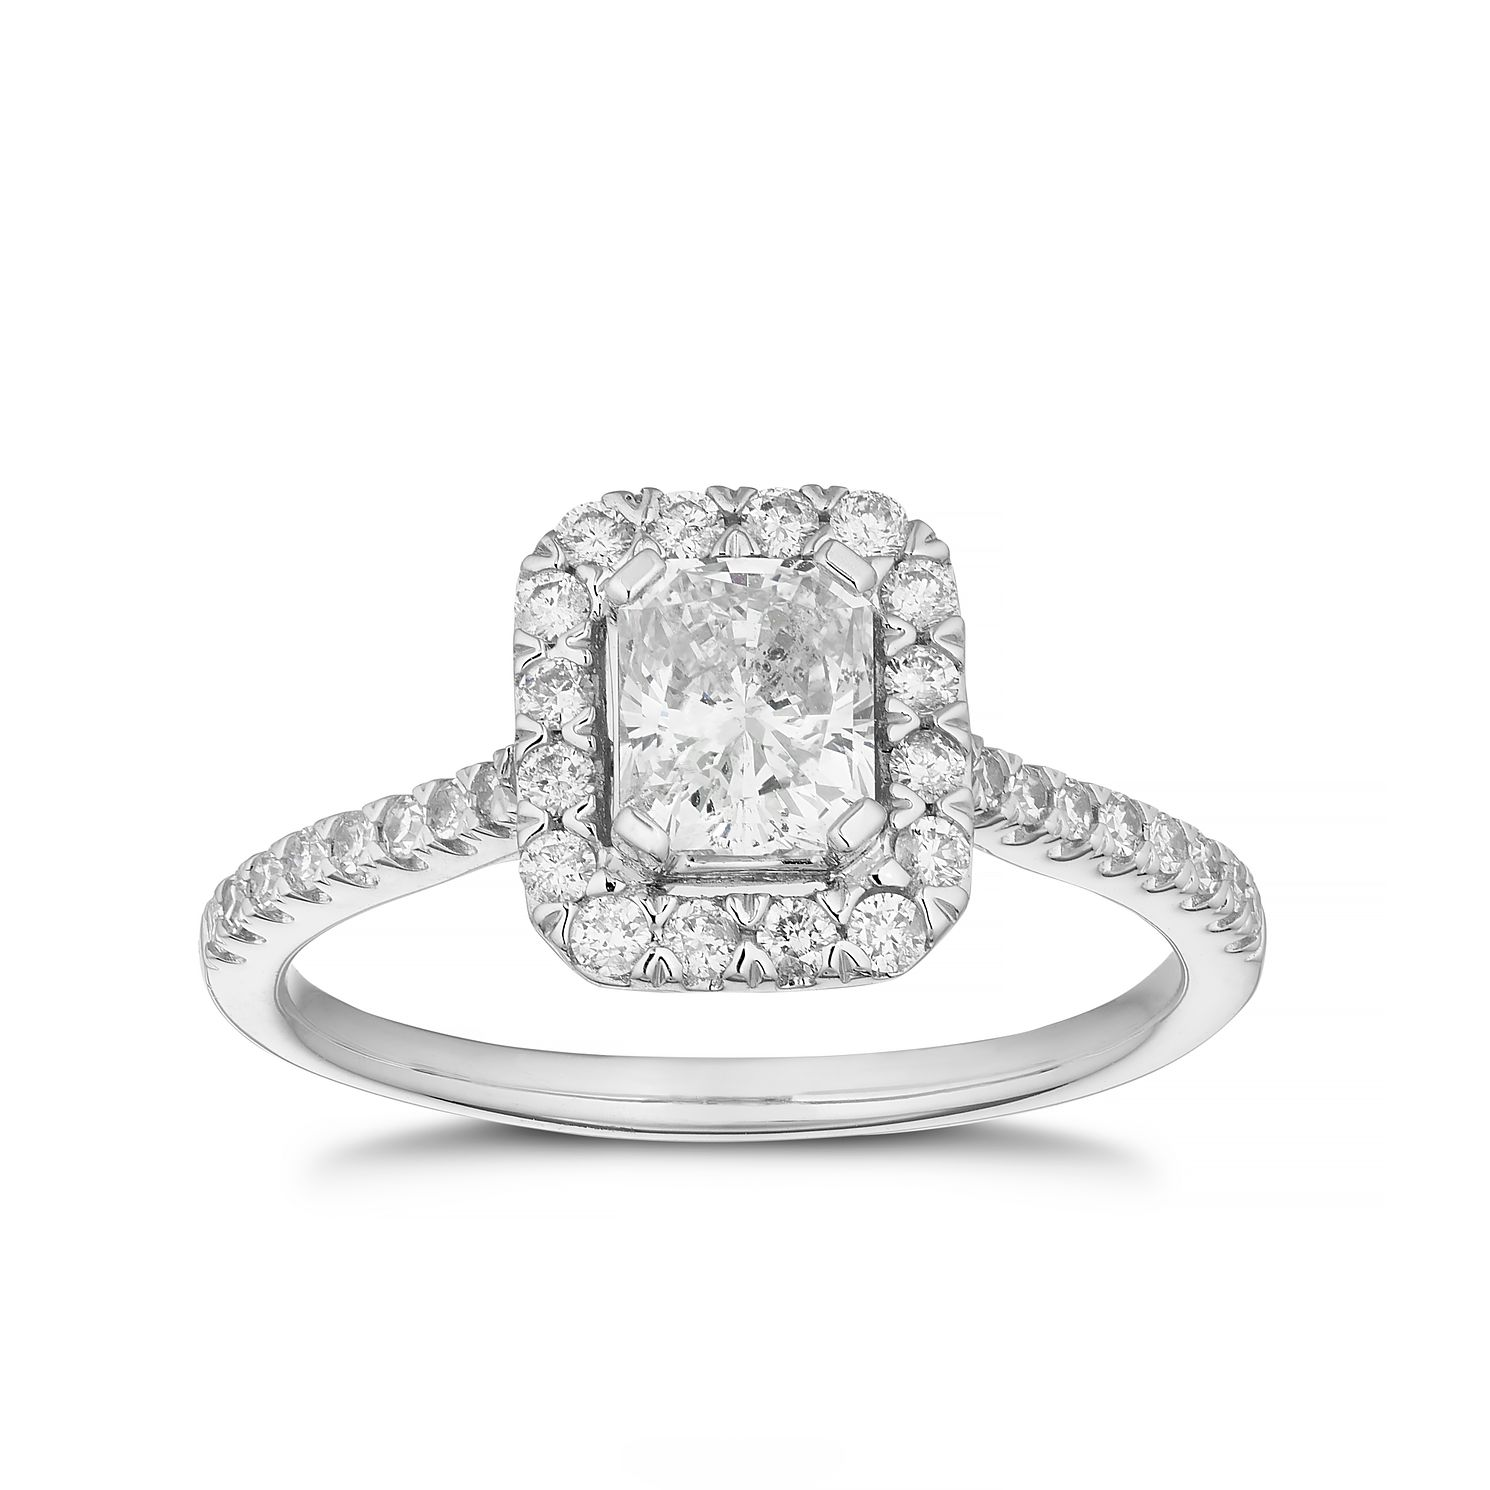 18ct White Gold 1ct Total Diamond Radiant Cut Halo Ring - Product number 3501361